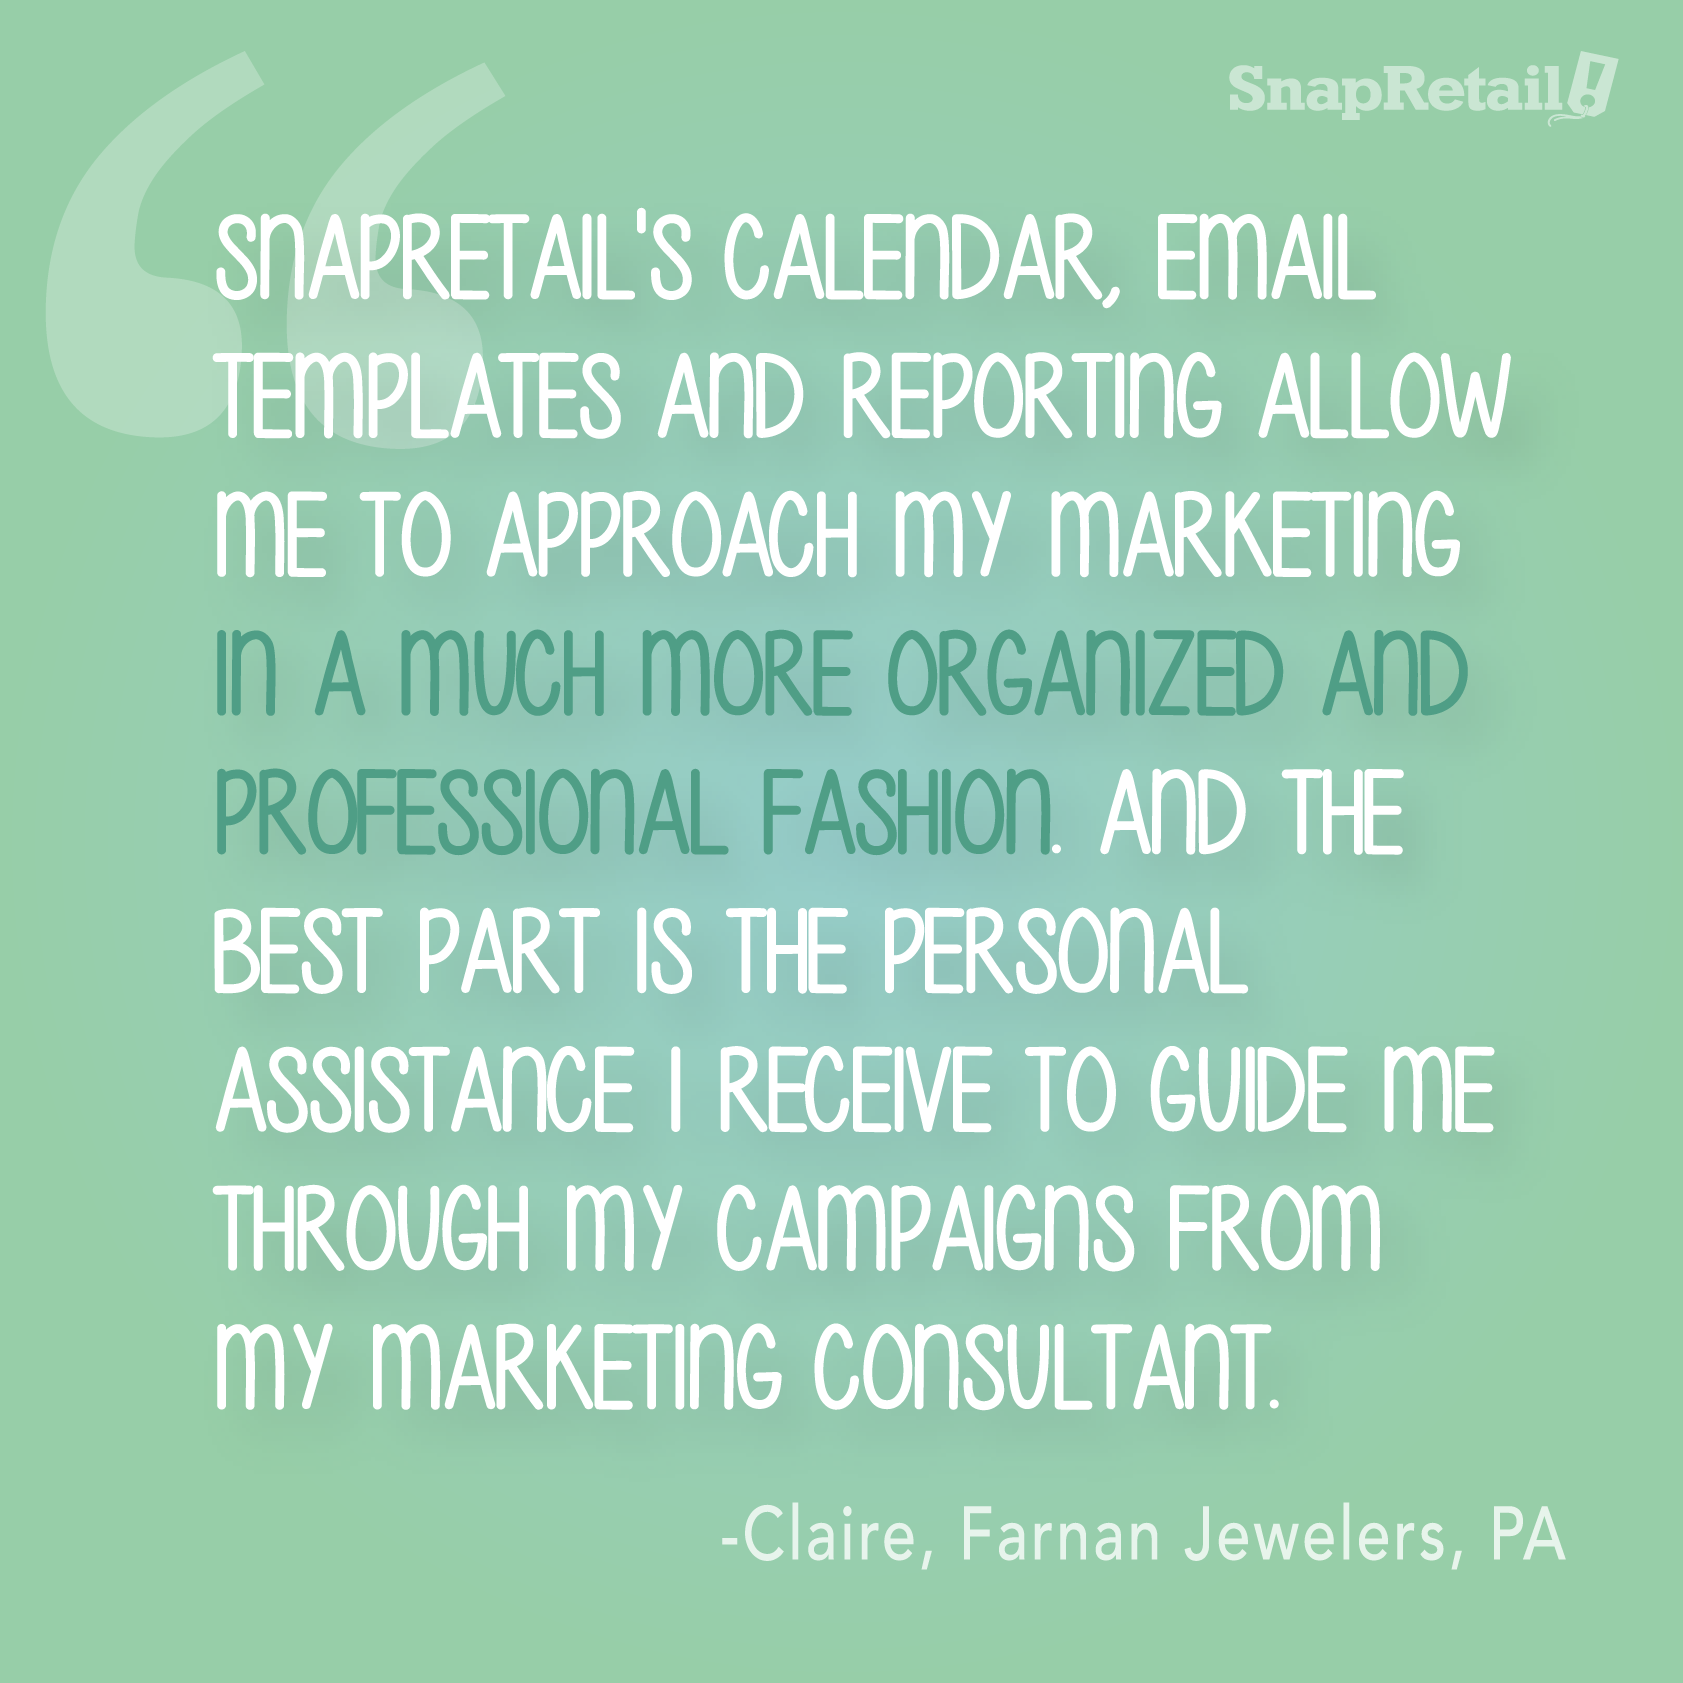 """SnapRetail's Calendar, Email Templates And Reporting"